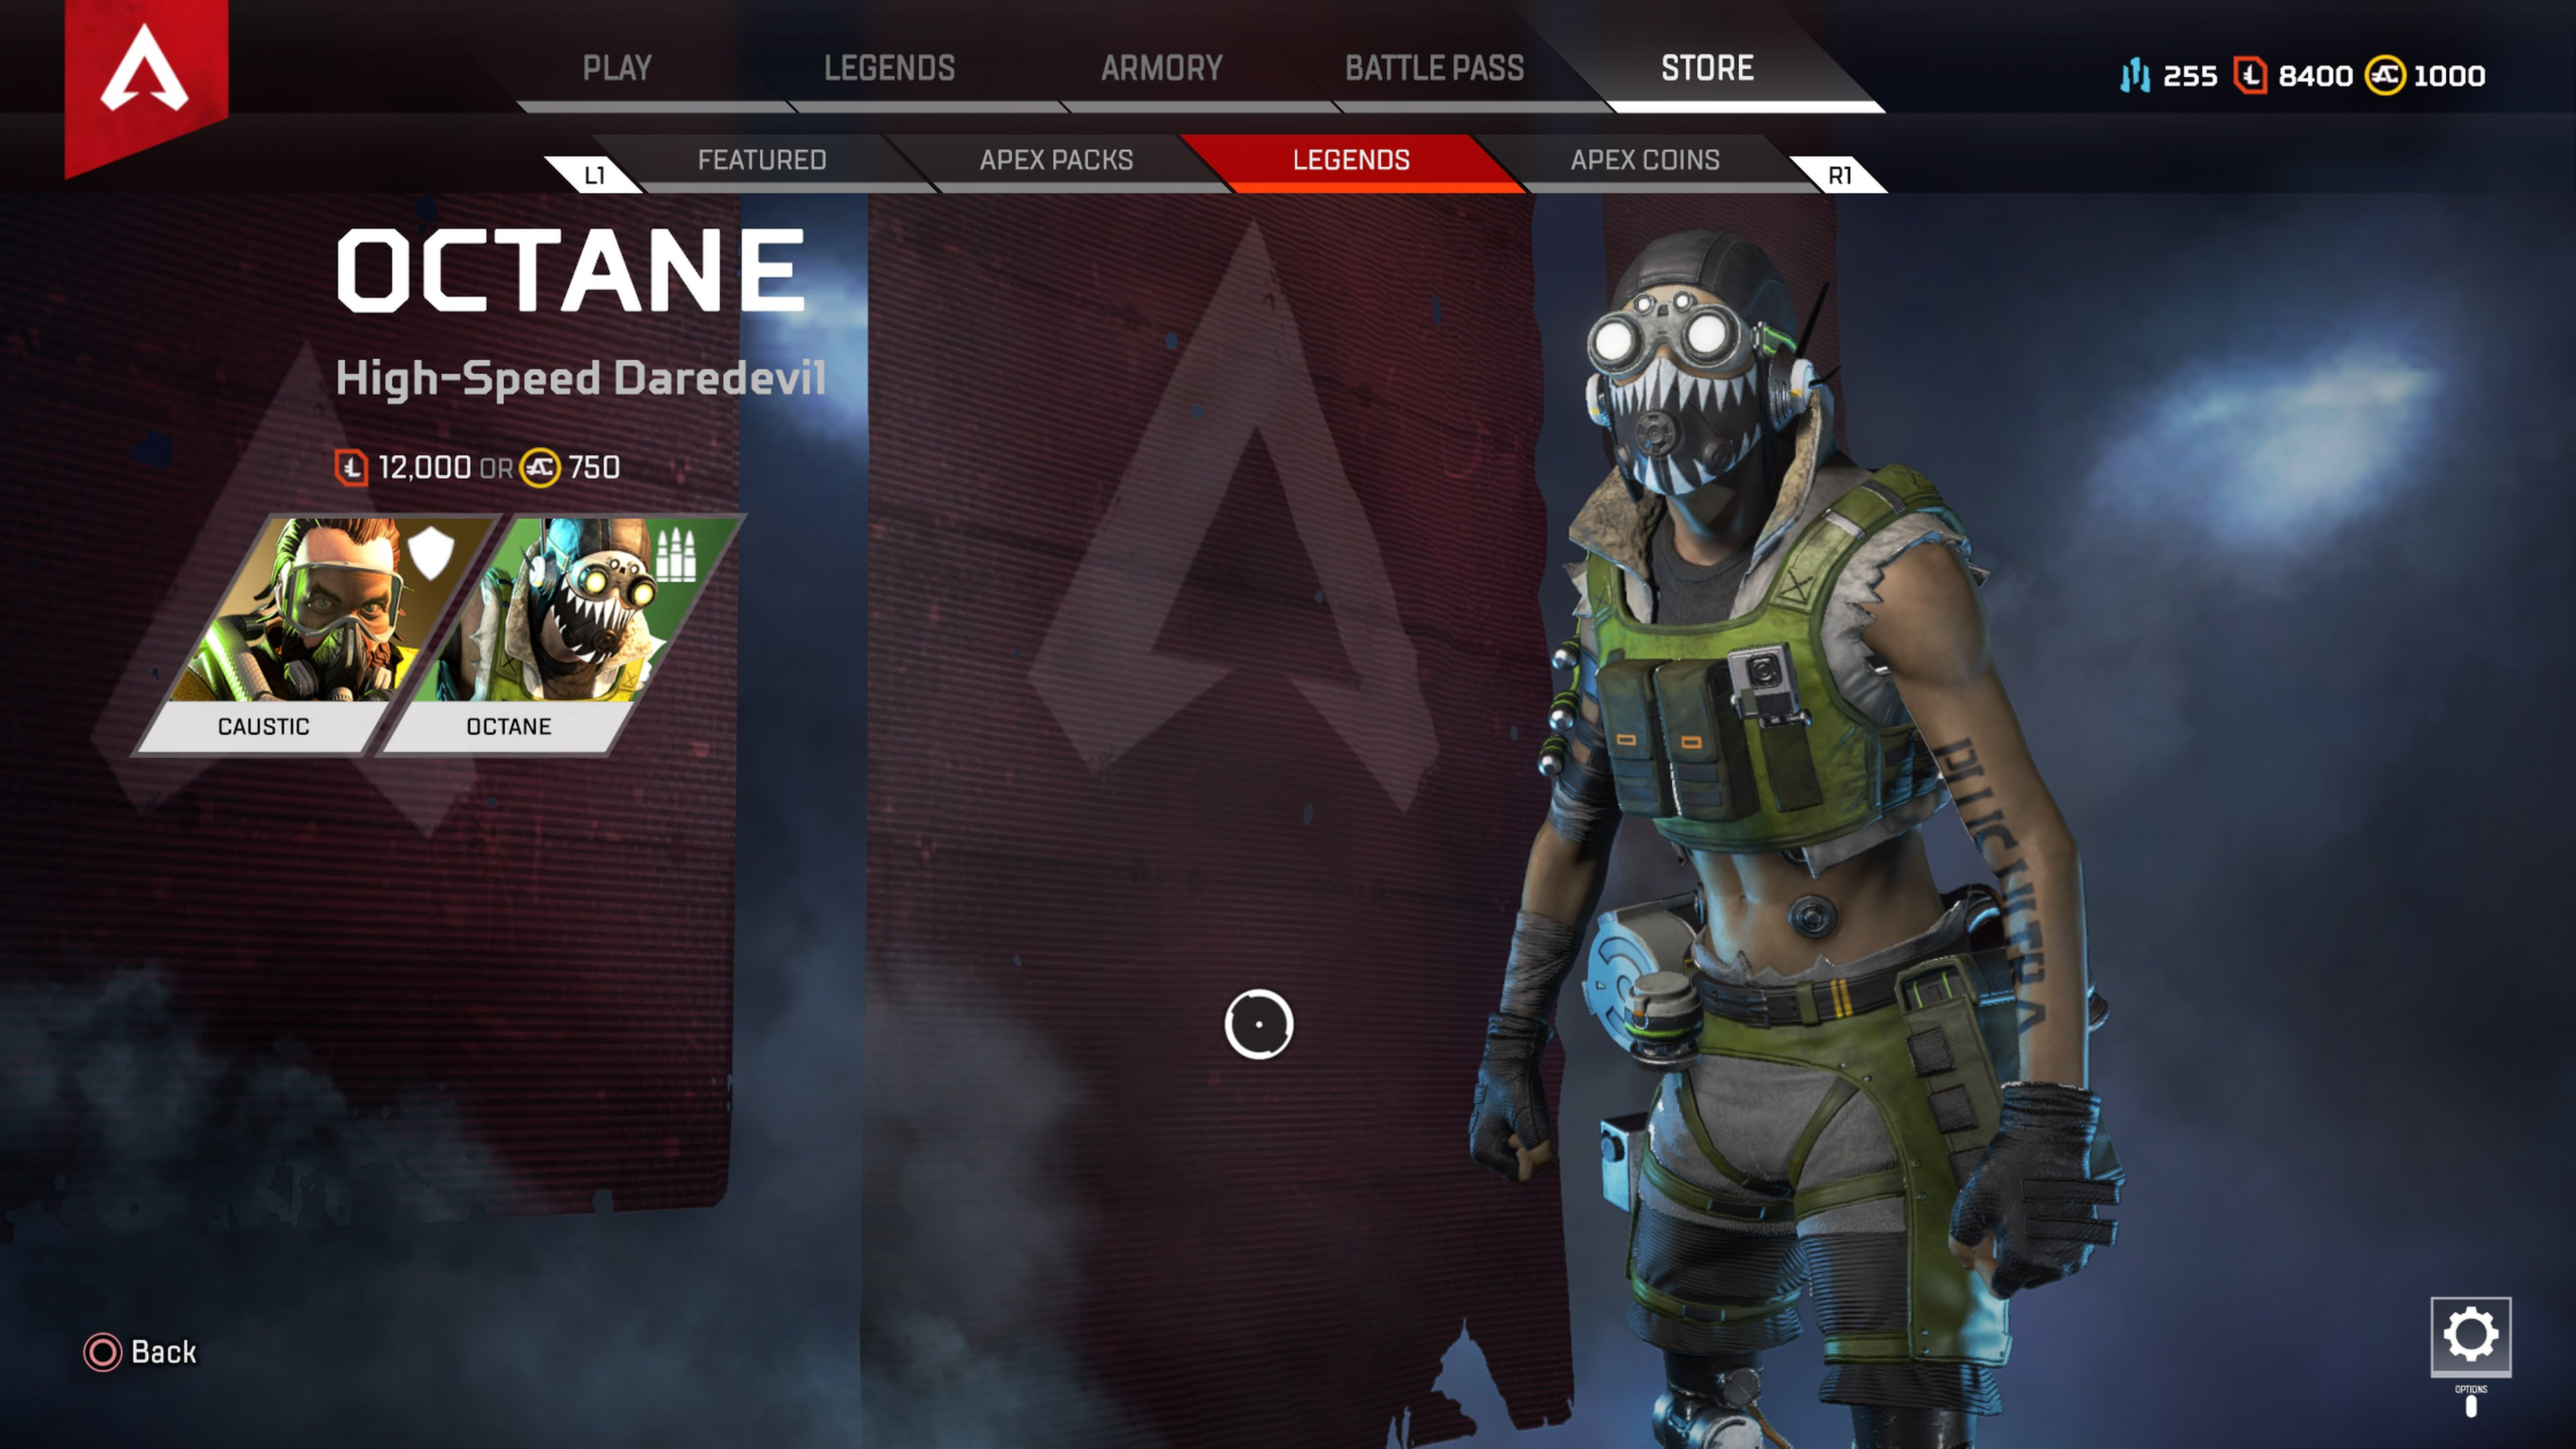 Apex Legends update 1.0 patch notes - octane character